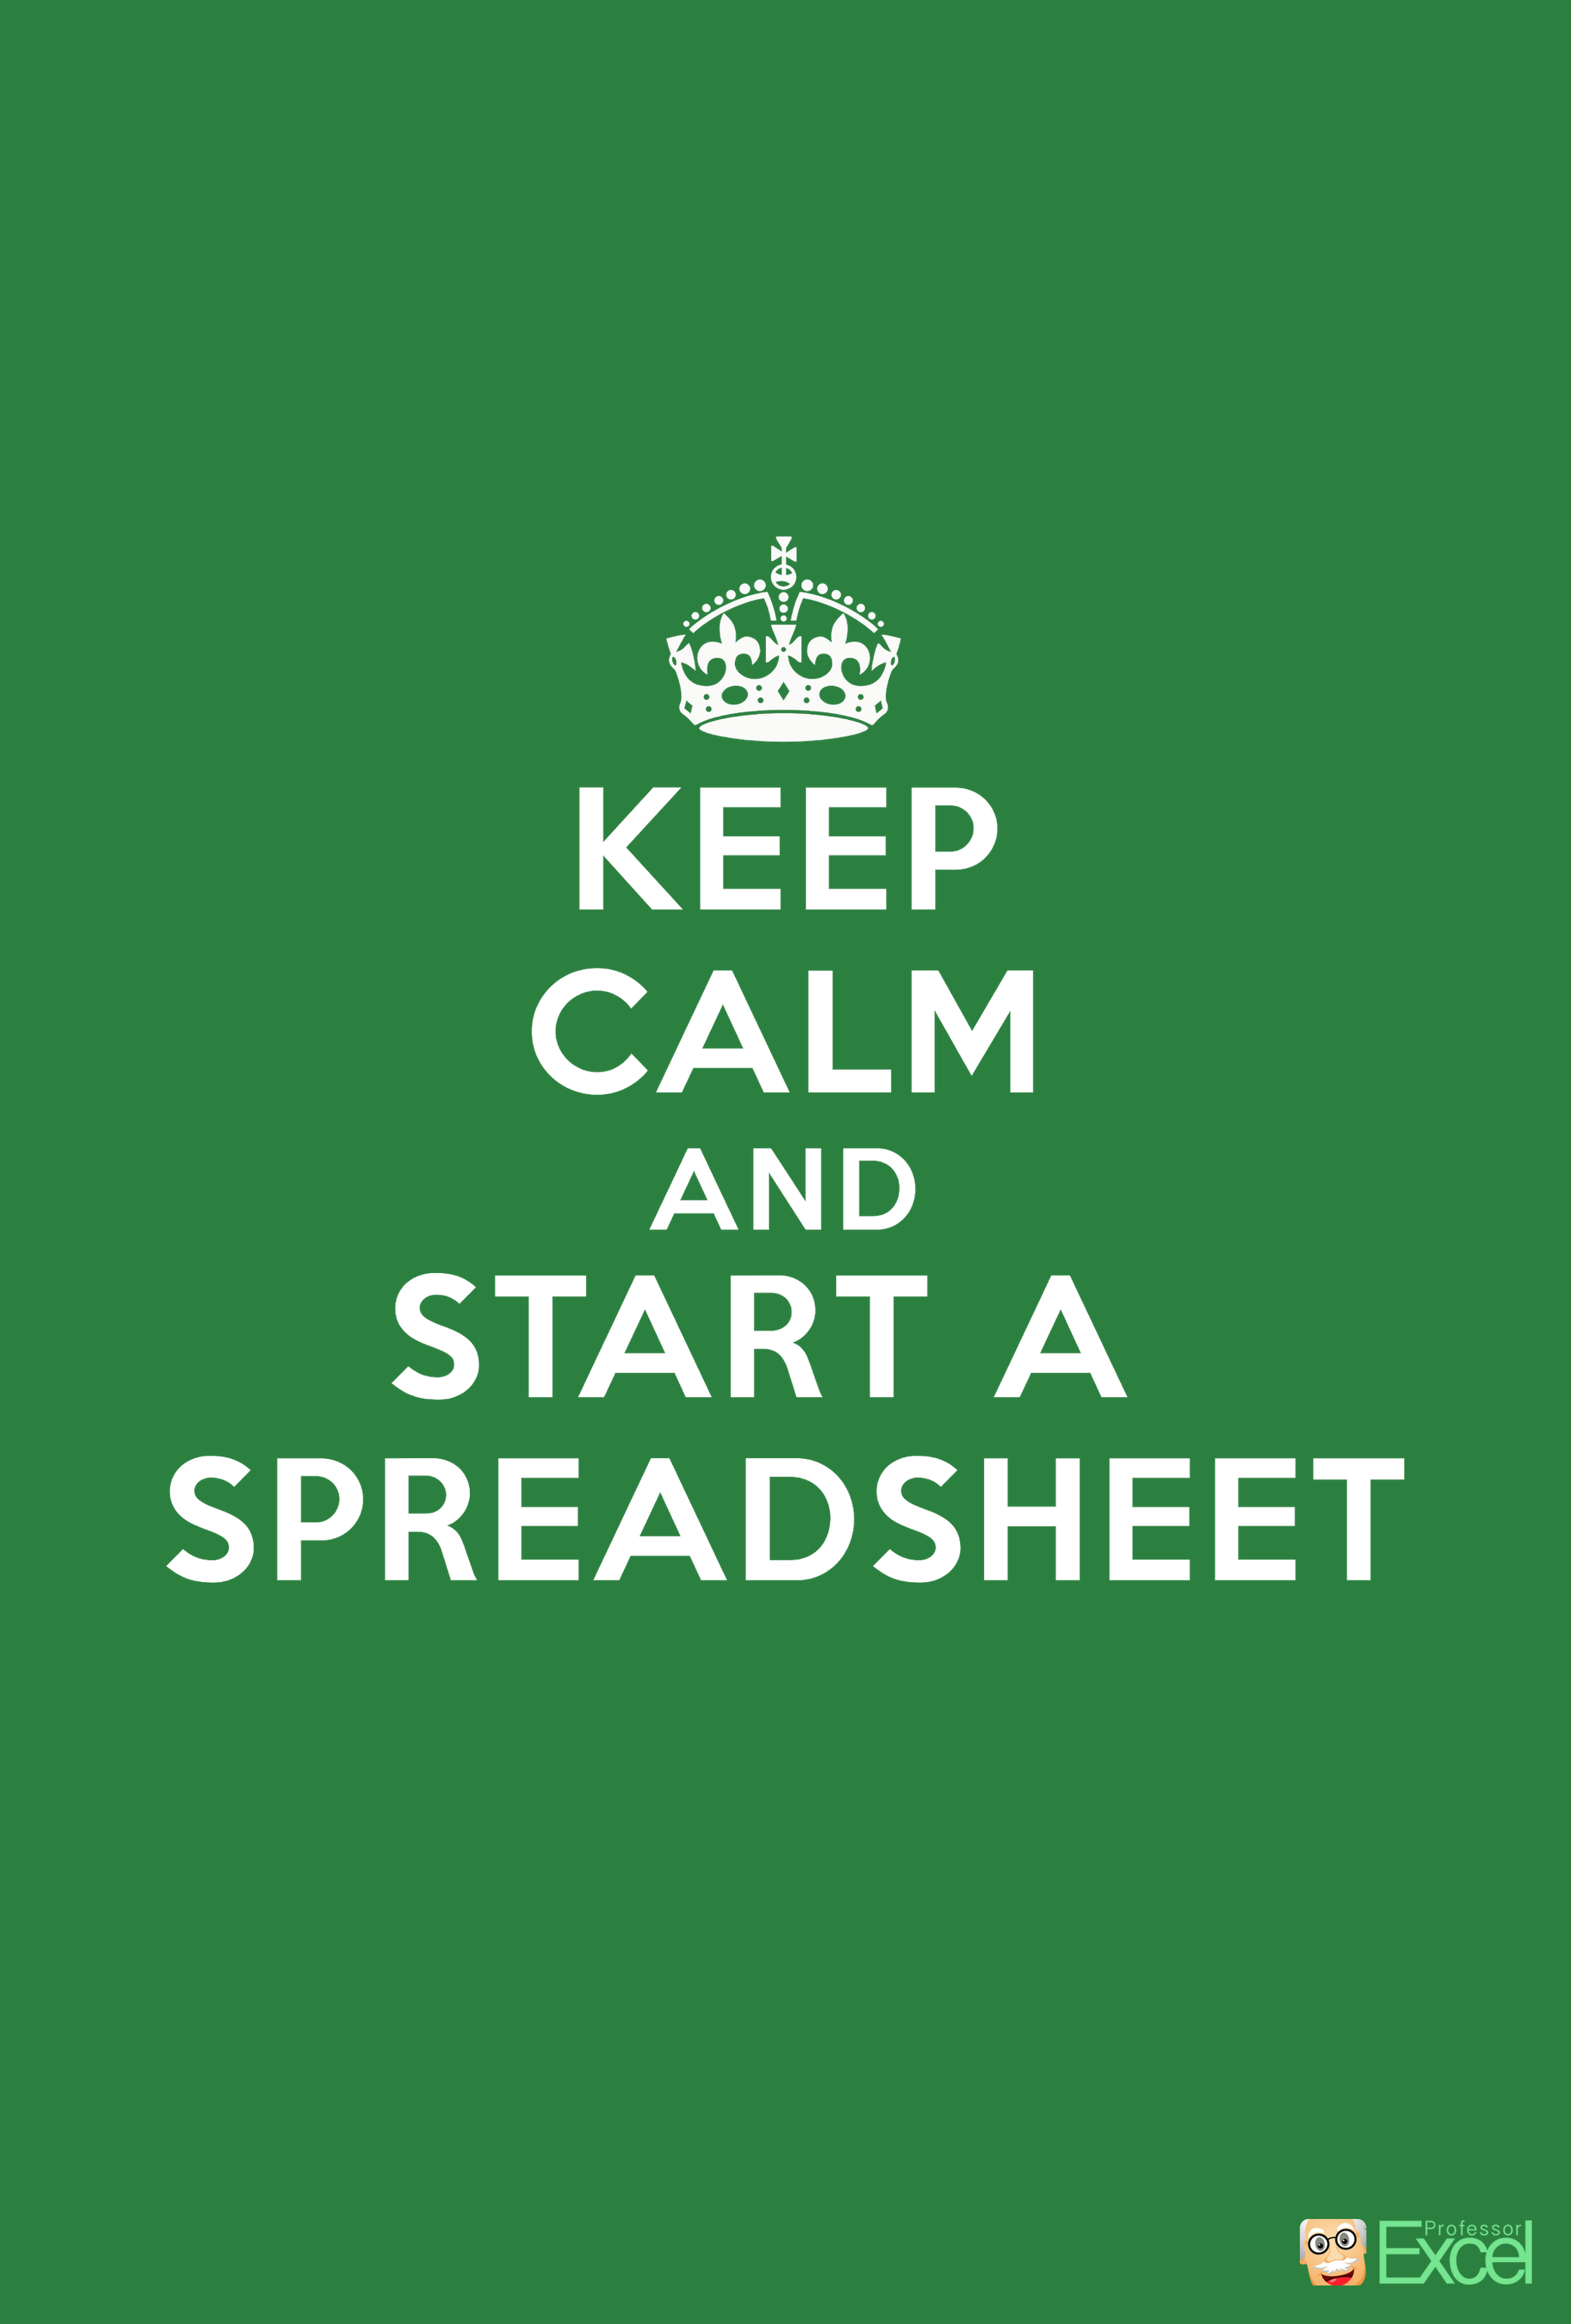 Wallpaper Mobile Excel Free Keep Calm Spreadsheet